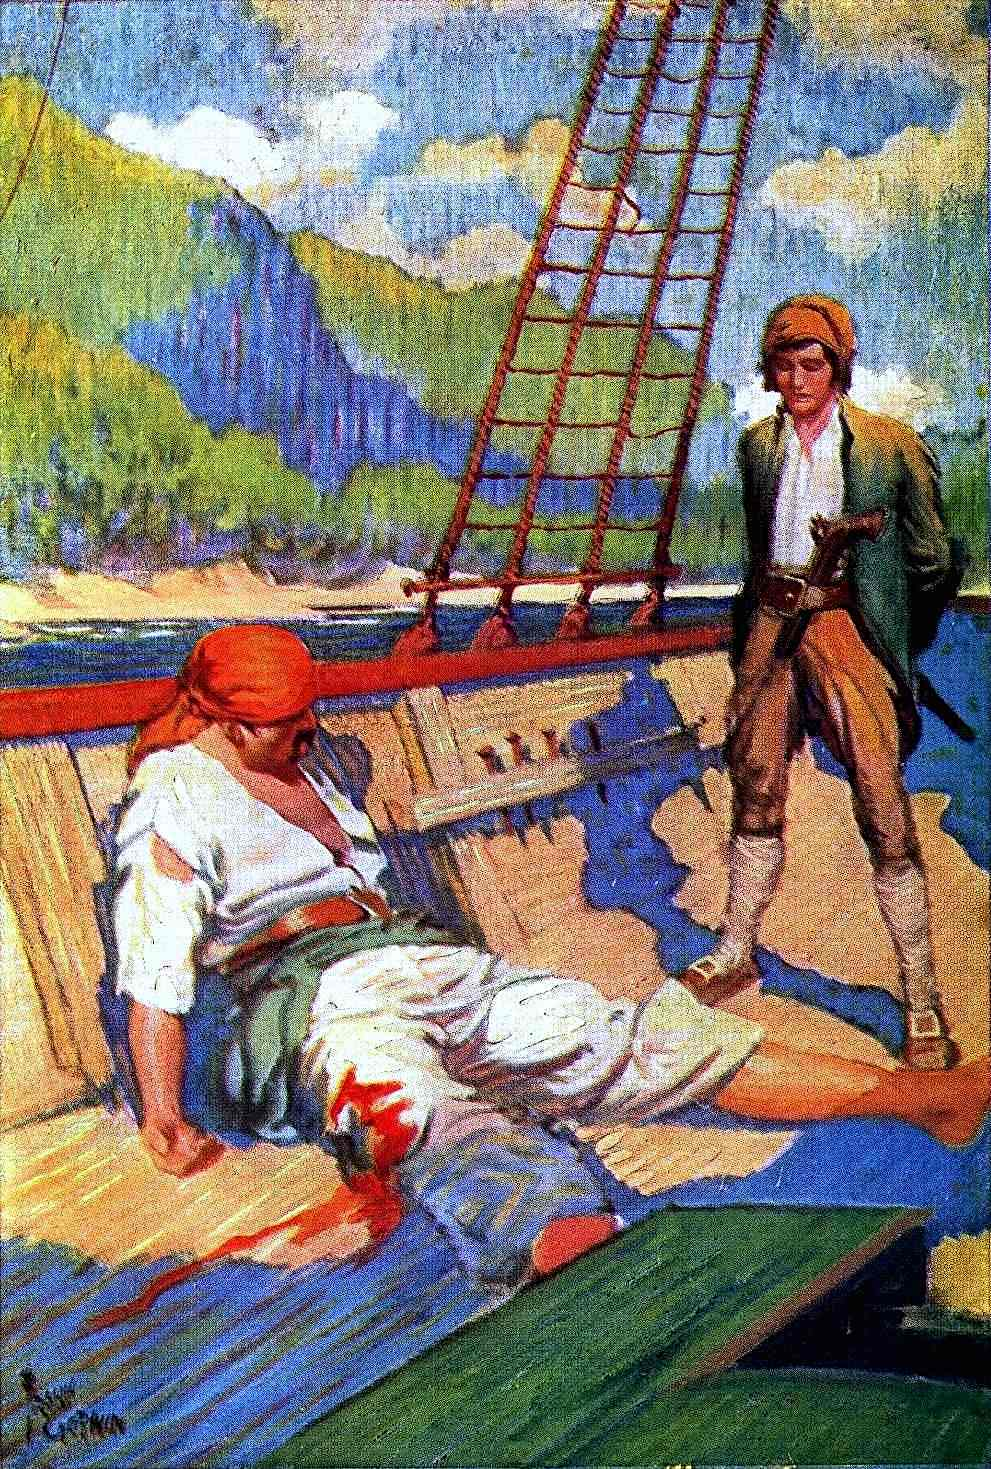 a Frank Godwin book illustration, guarding a wounded pirate